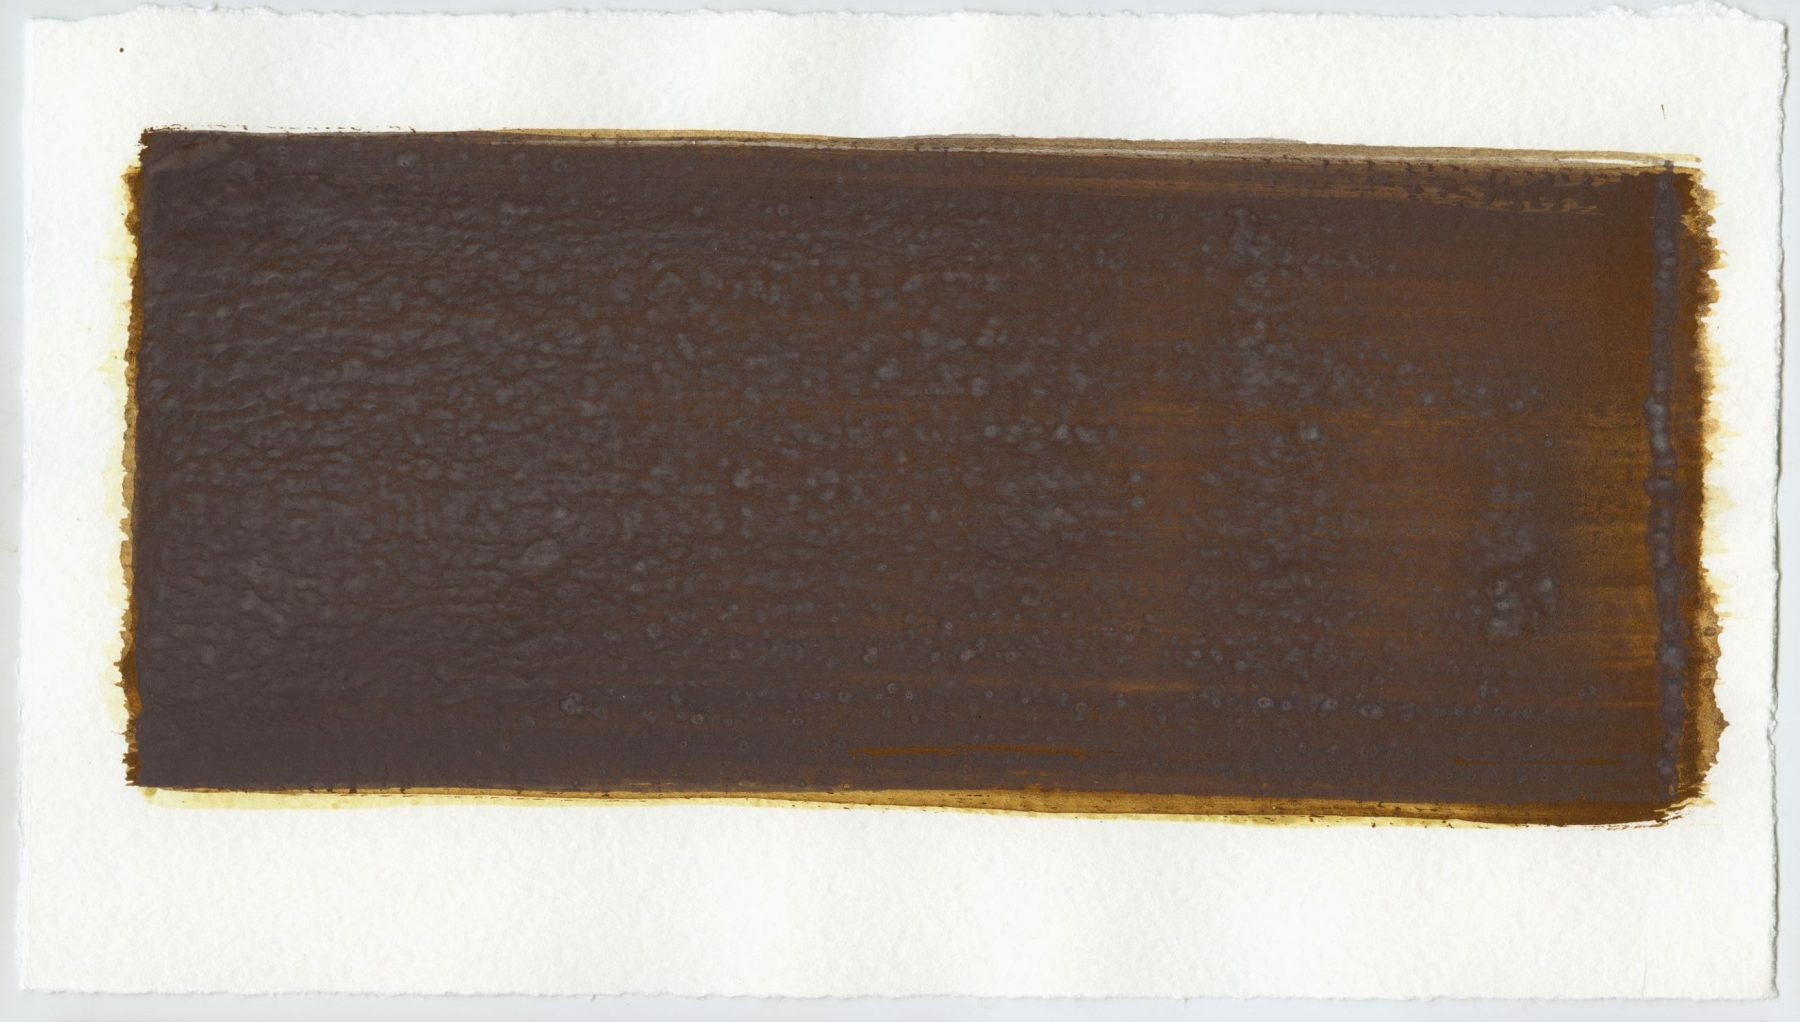 Brush stroke no. 66 - SOLD - Selfmade pigment: Mortelse oker, IJzeroer, Mortel paarsgrijs fijn